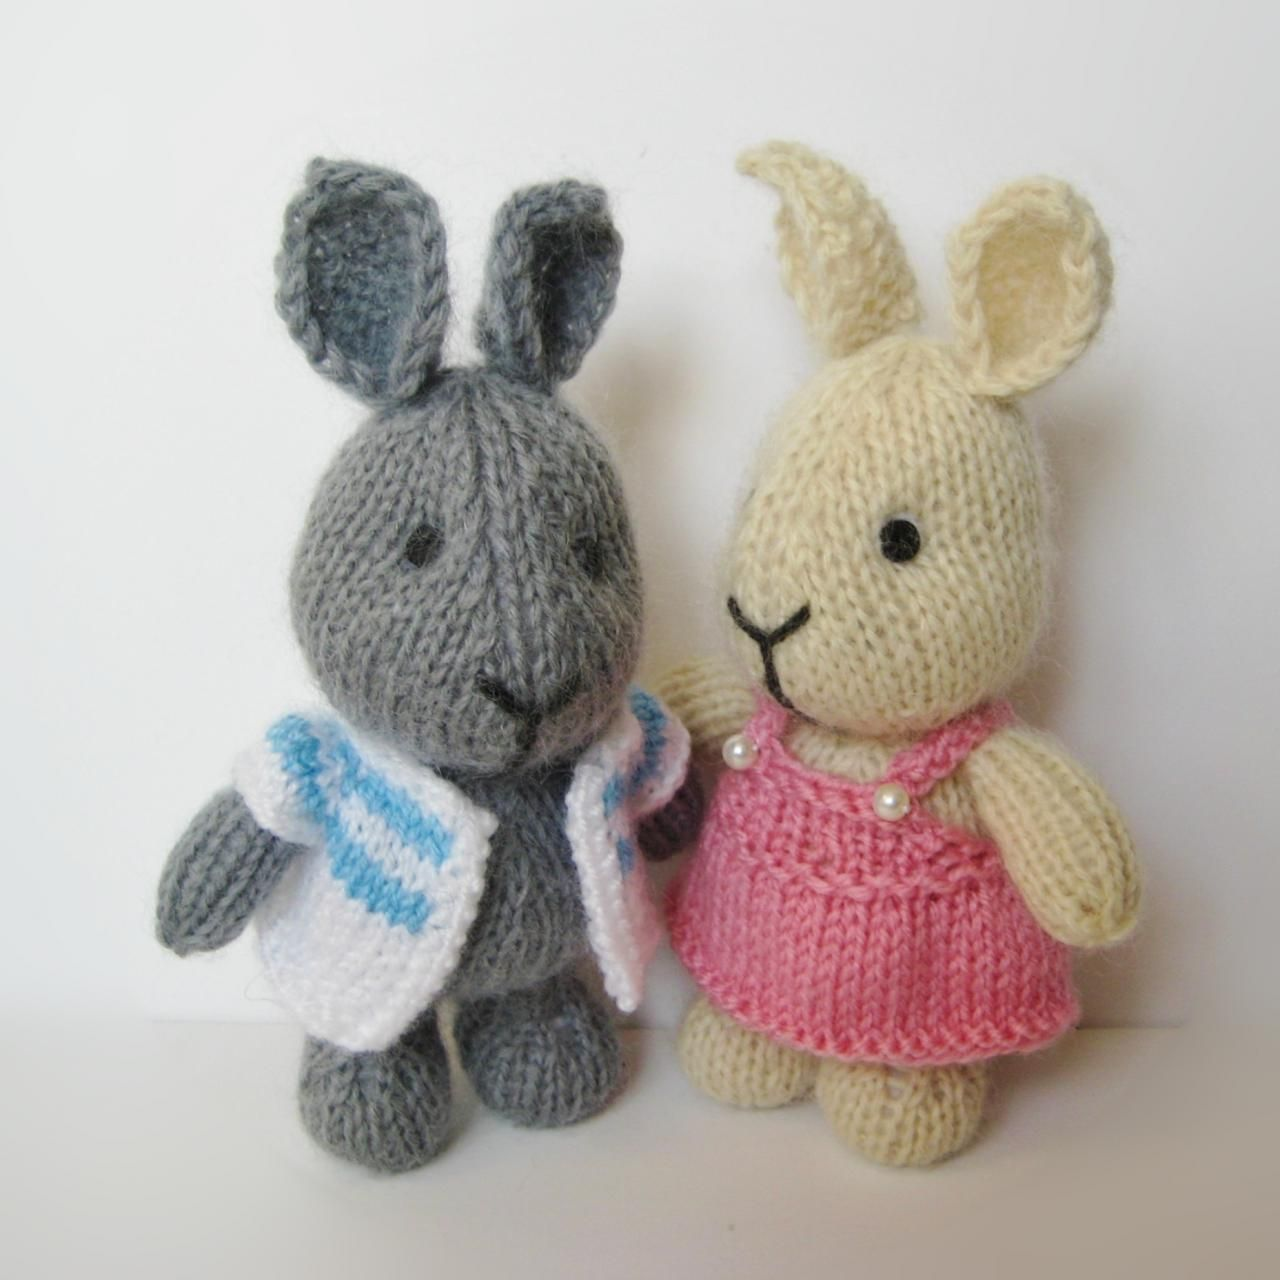 Harry and hatty hare toy knitting patterns knitting pinterest harry and hatty hare toy knitting patterns bankloansurffo Gallery